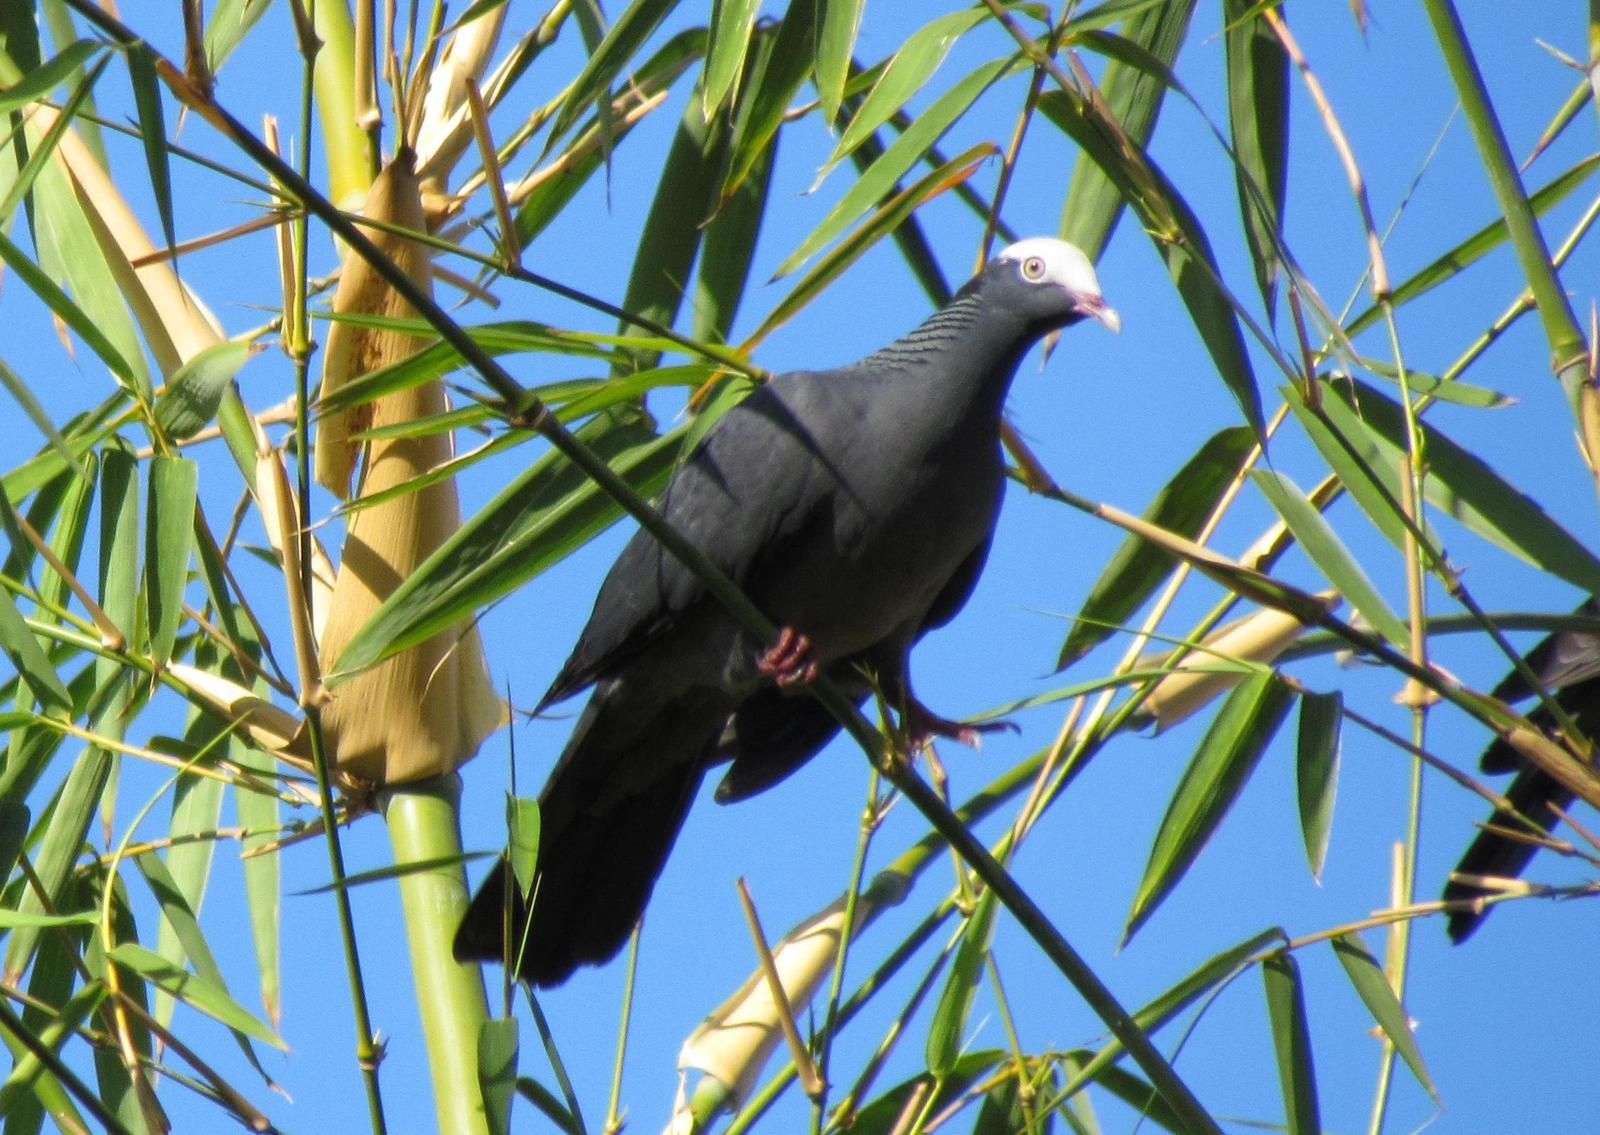 White-crowned Pigeon Photo by Jeff Harding